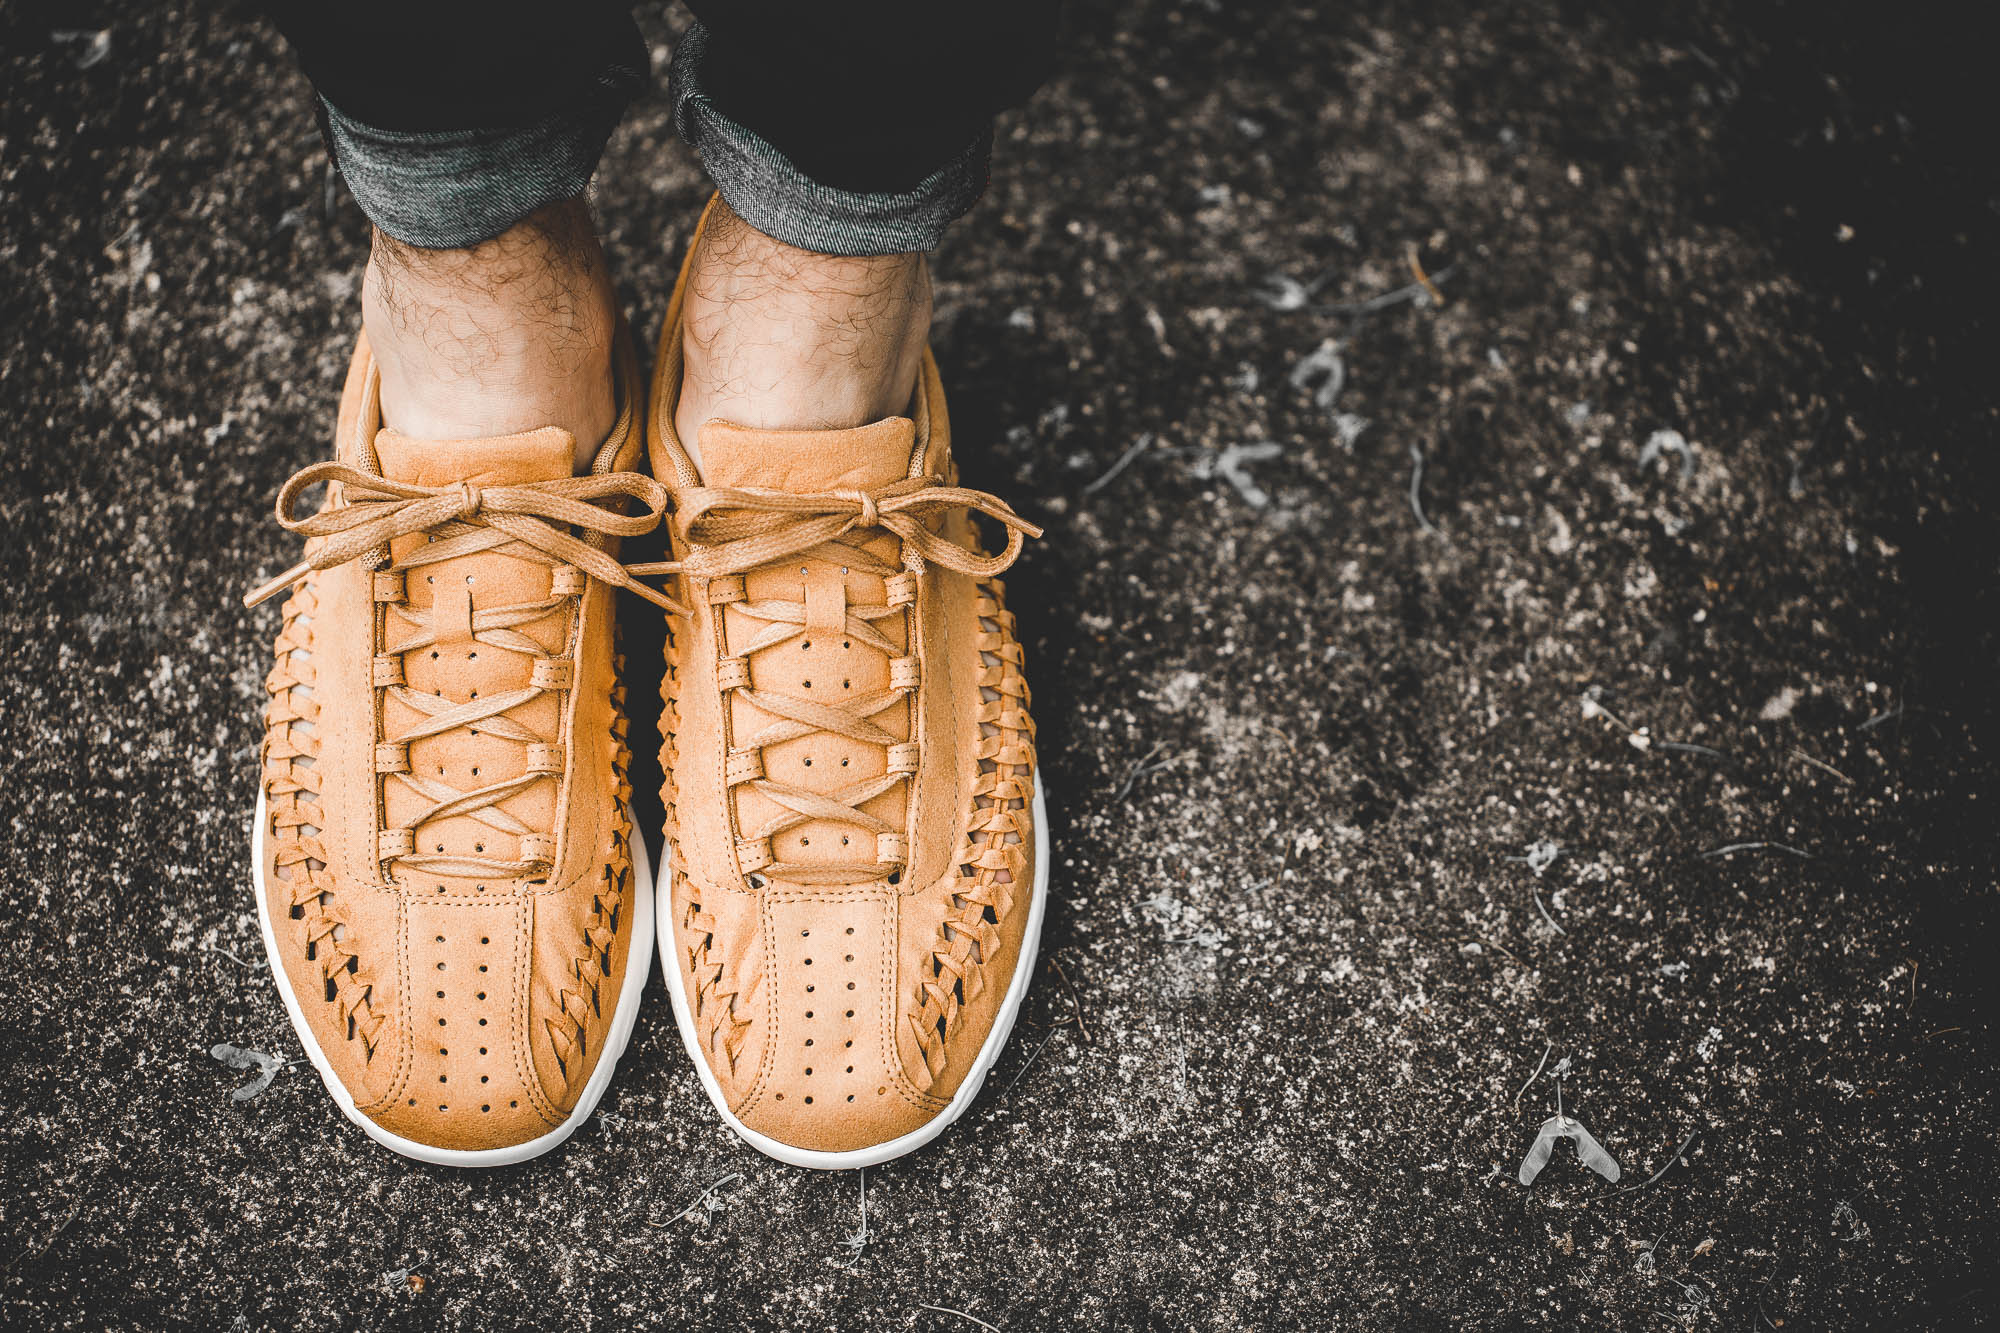 giay-nike-mayfly-woven-curry-5